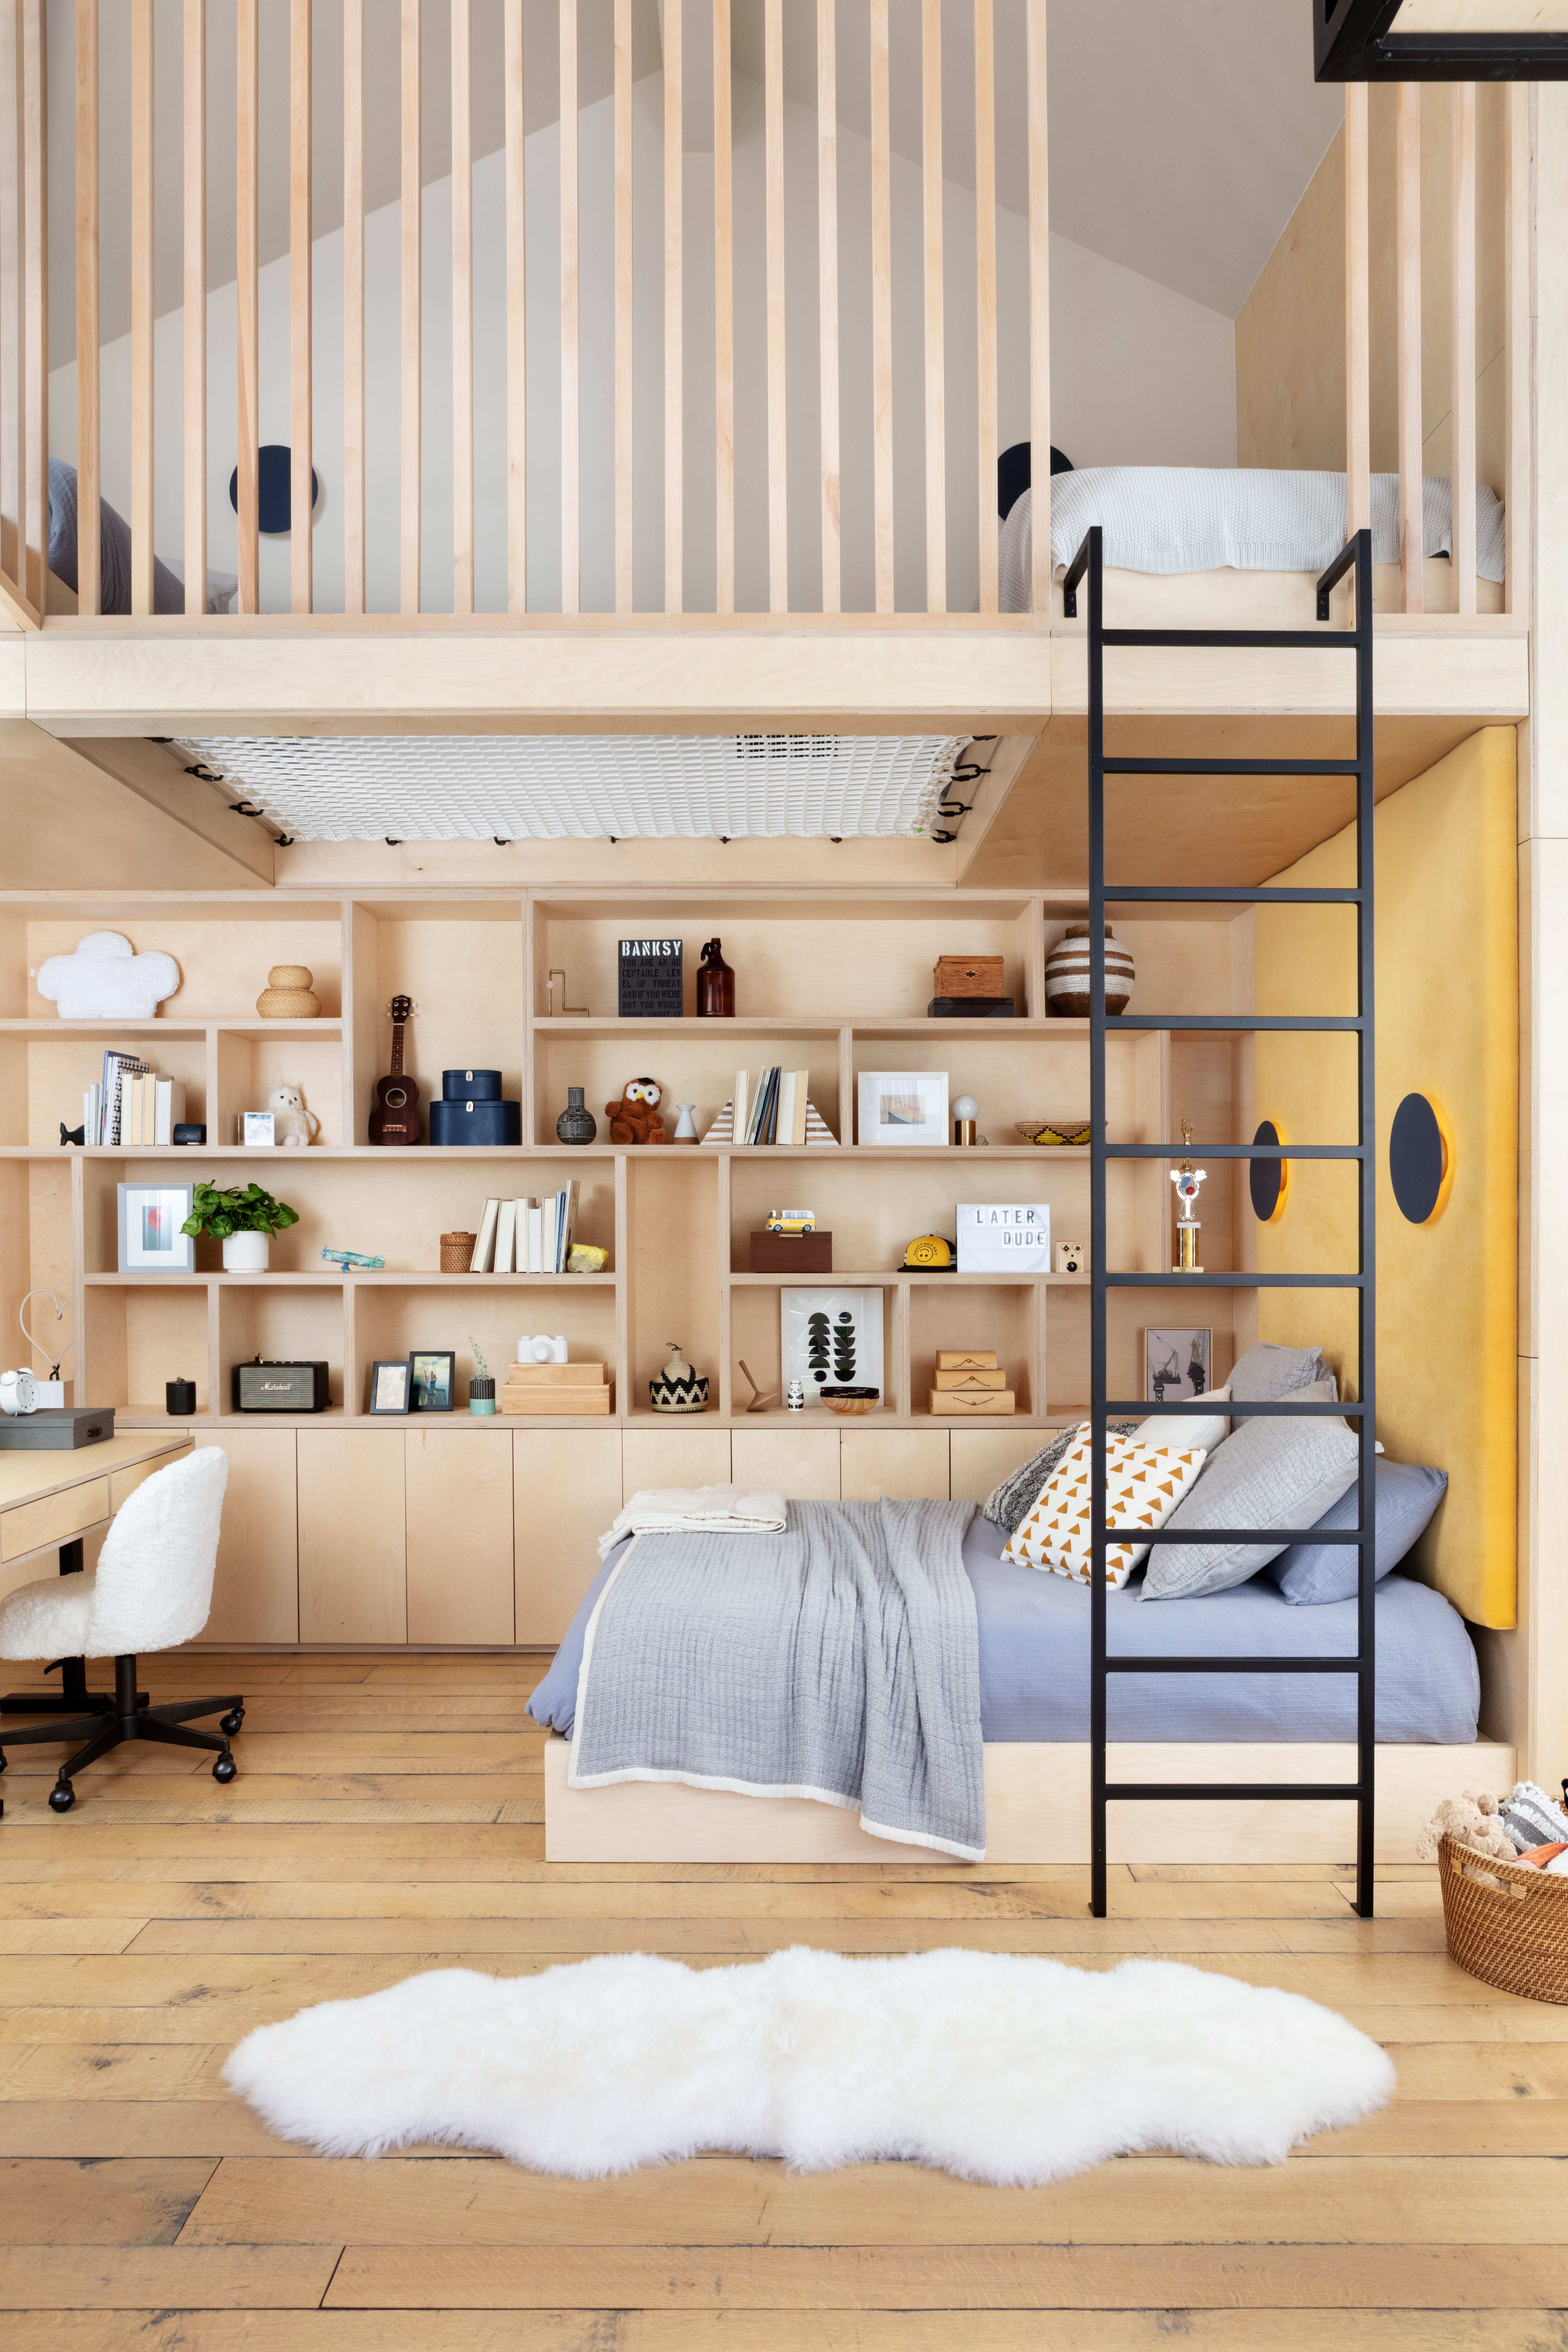 3 Kids Bedroom Ideas We Learned From This Playful L A Home Kids Bedroom Designs Cool Kids Rooms Bedroom Design